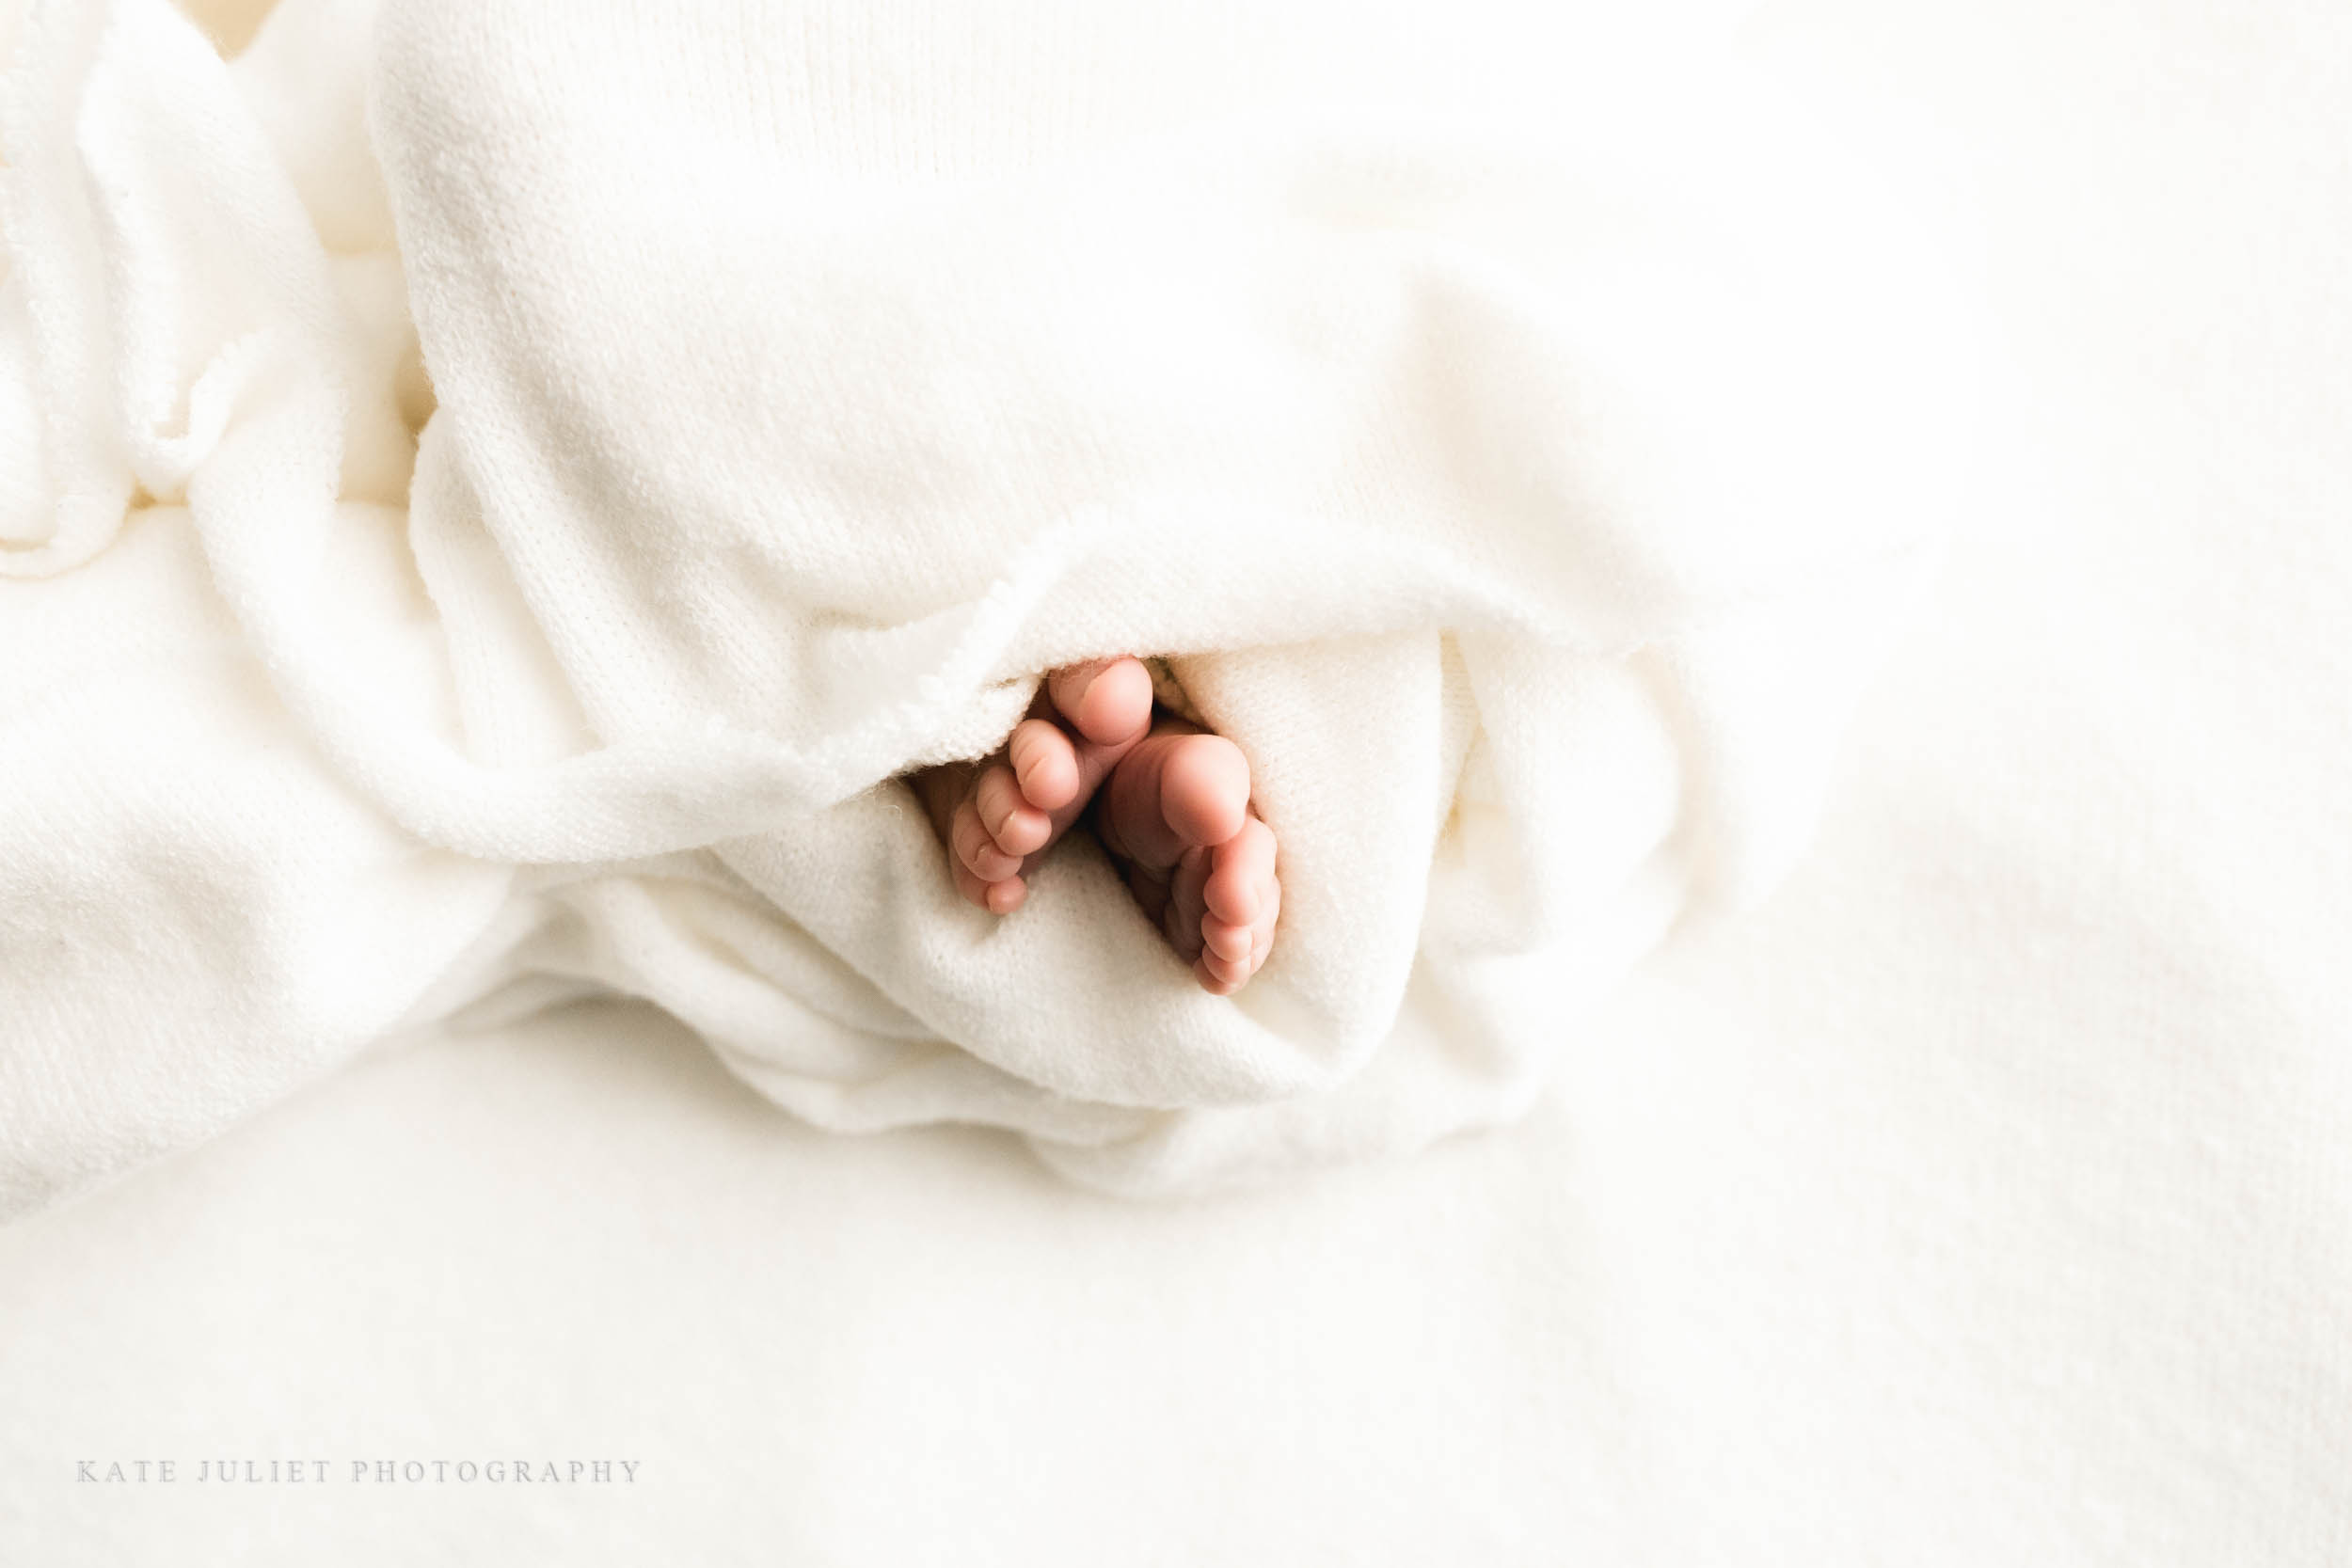 Fairfax County VA Newborn Baby Photographer | Kate Juliet Photography